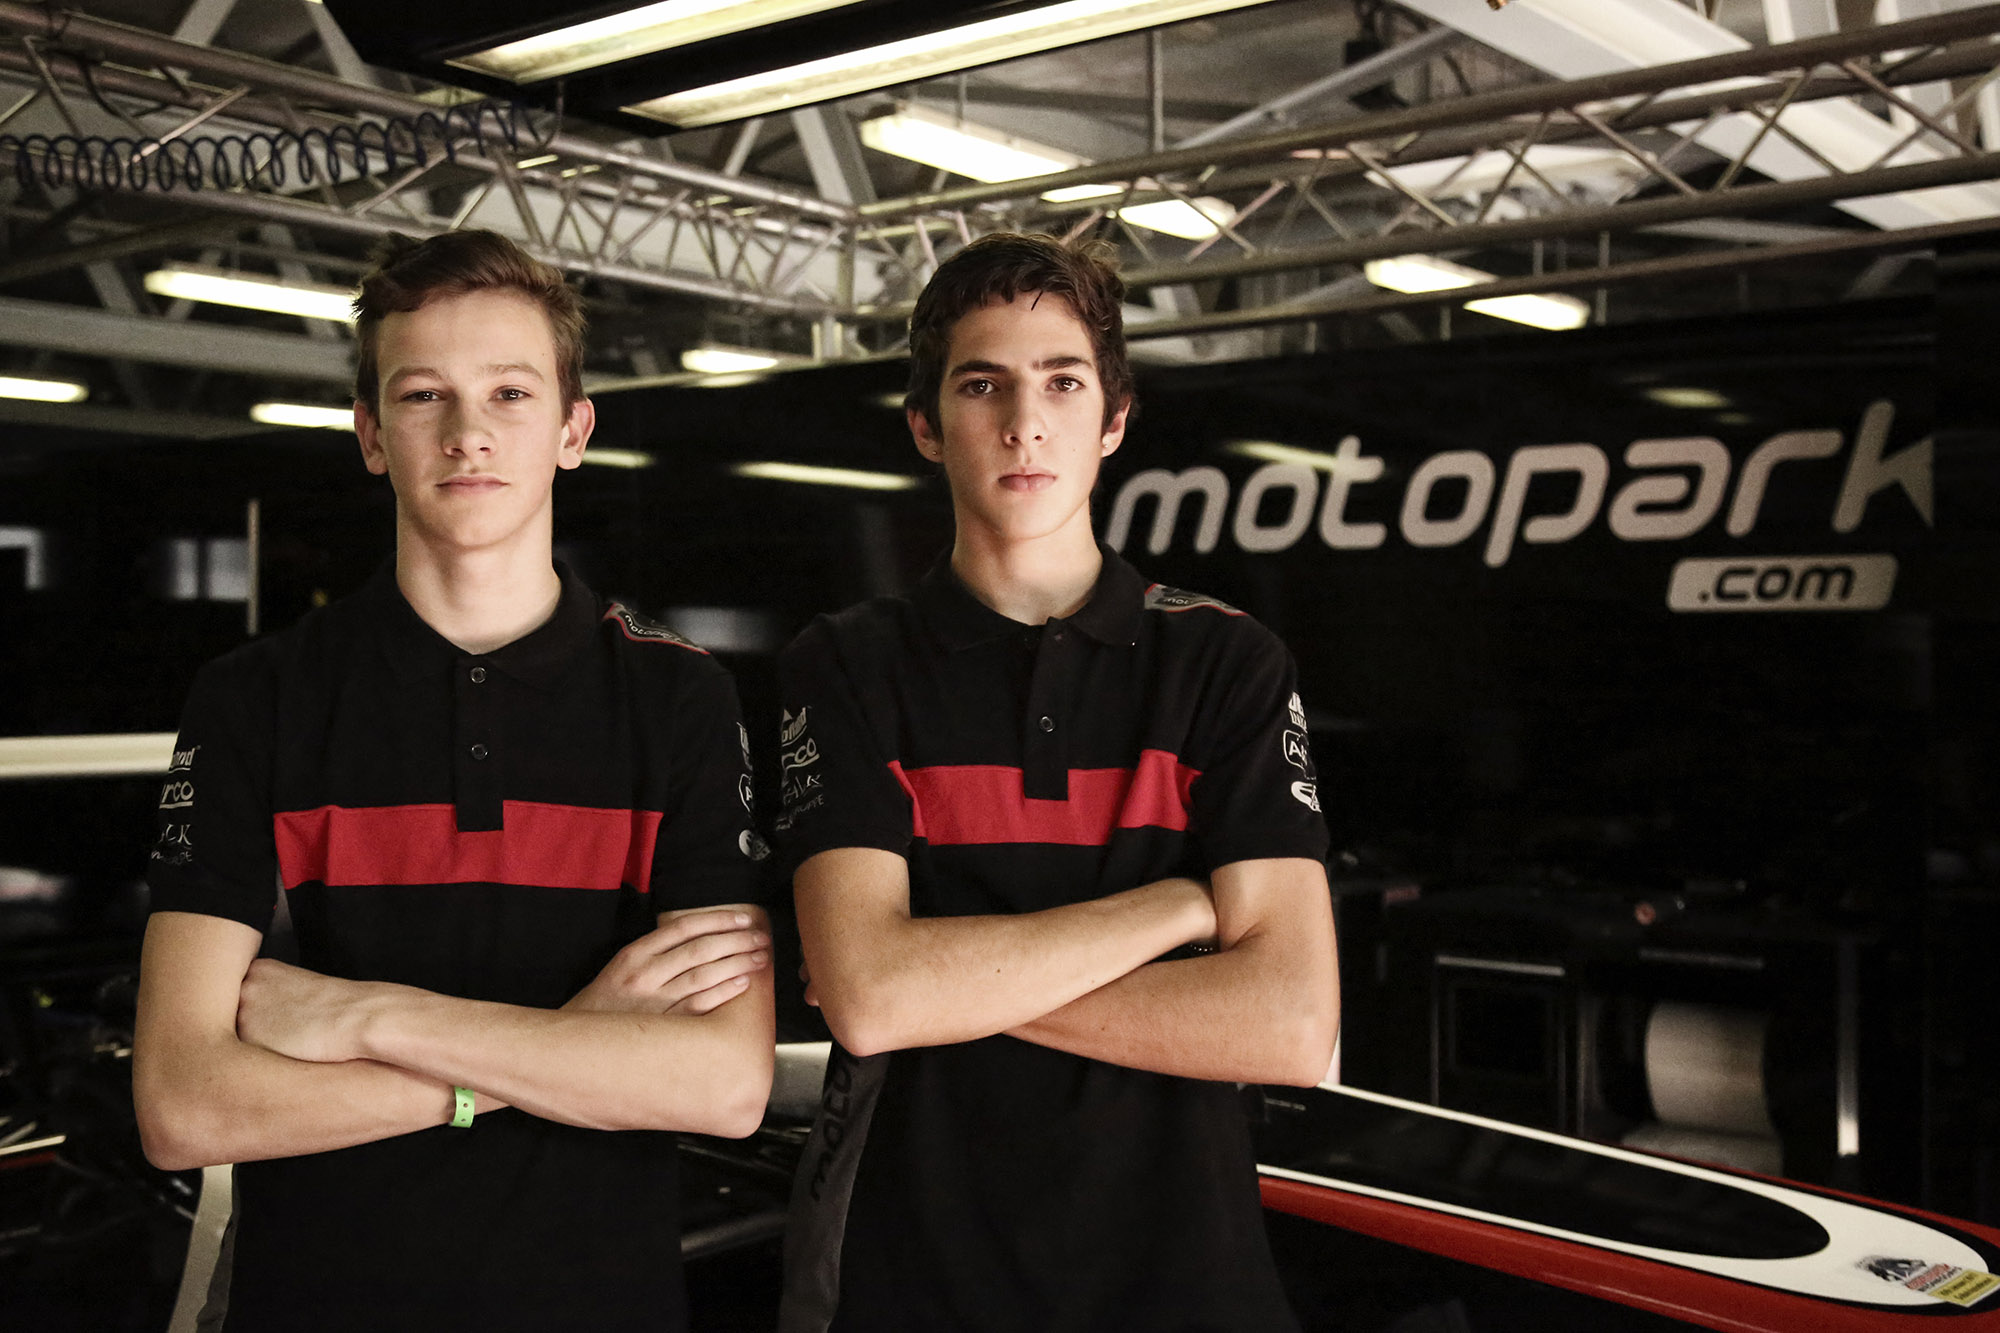 TEAM MOTOPARK WELCOMES TWO NEW DRIVERS TO FORMULA 4 UAE